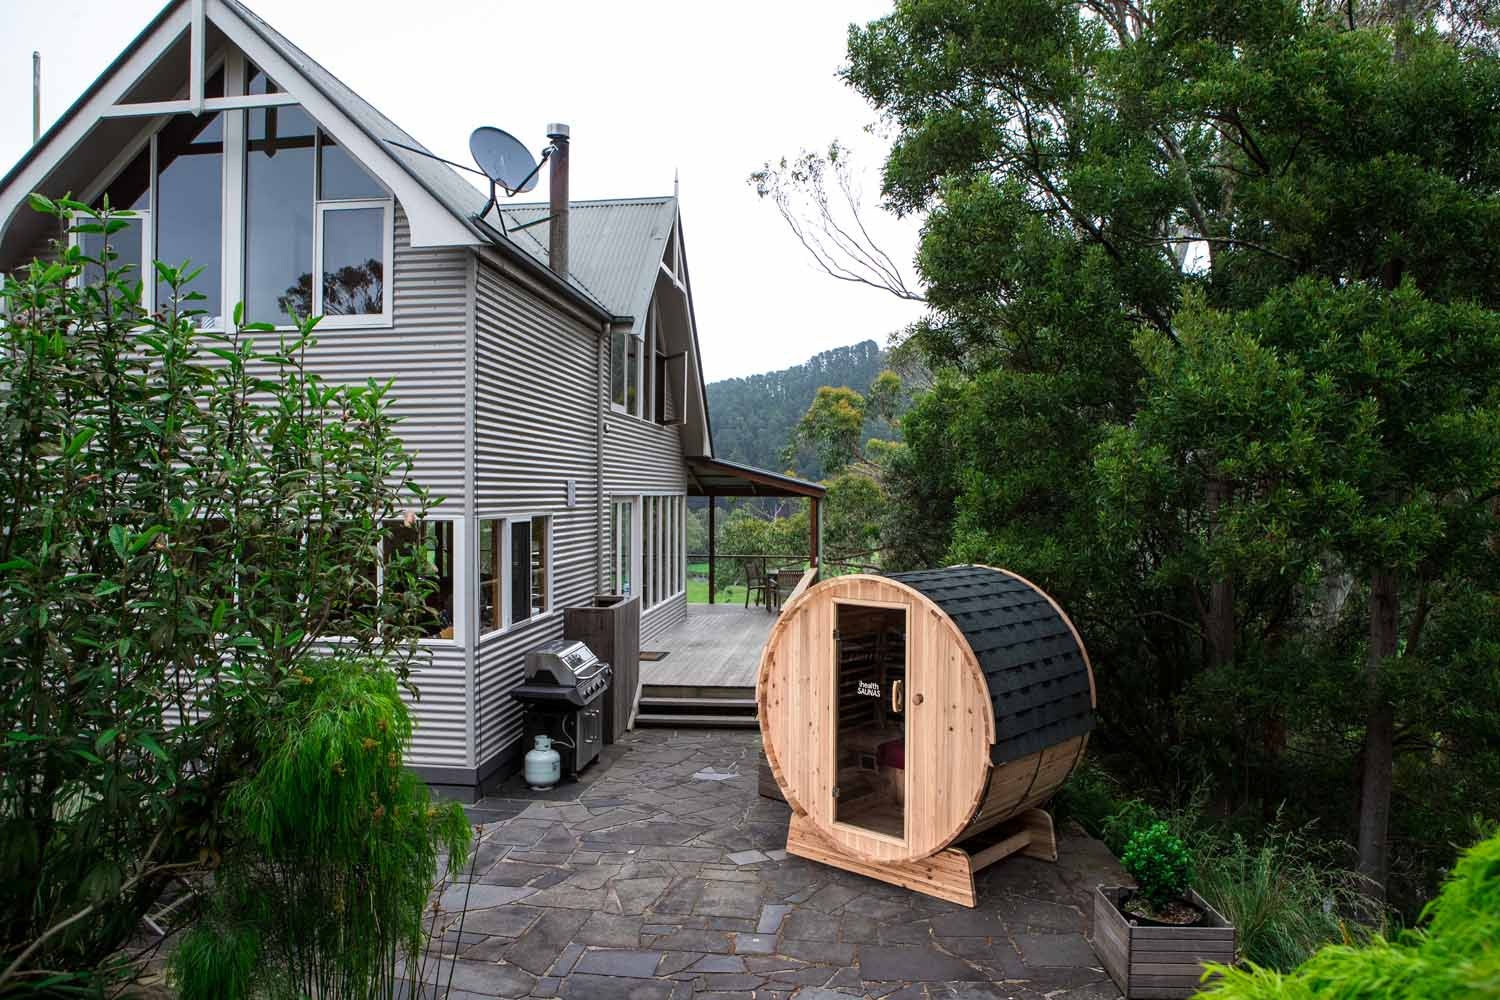 Ihealth Outdoor Barrel Sauna